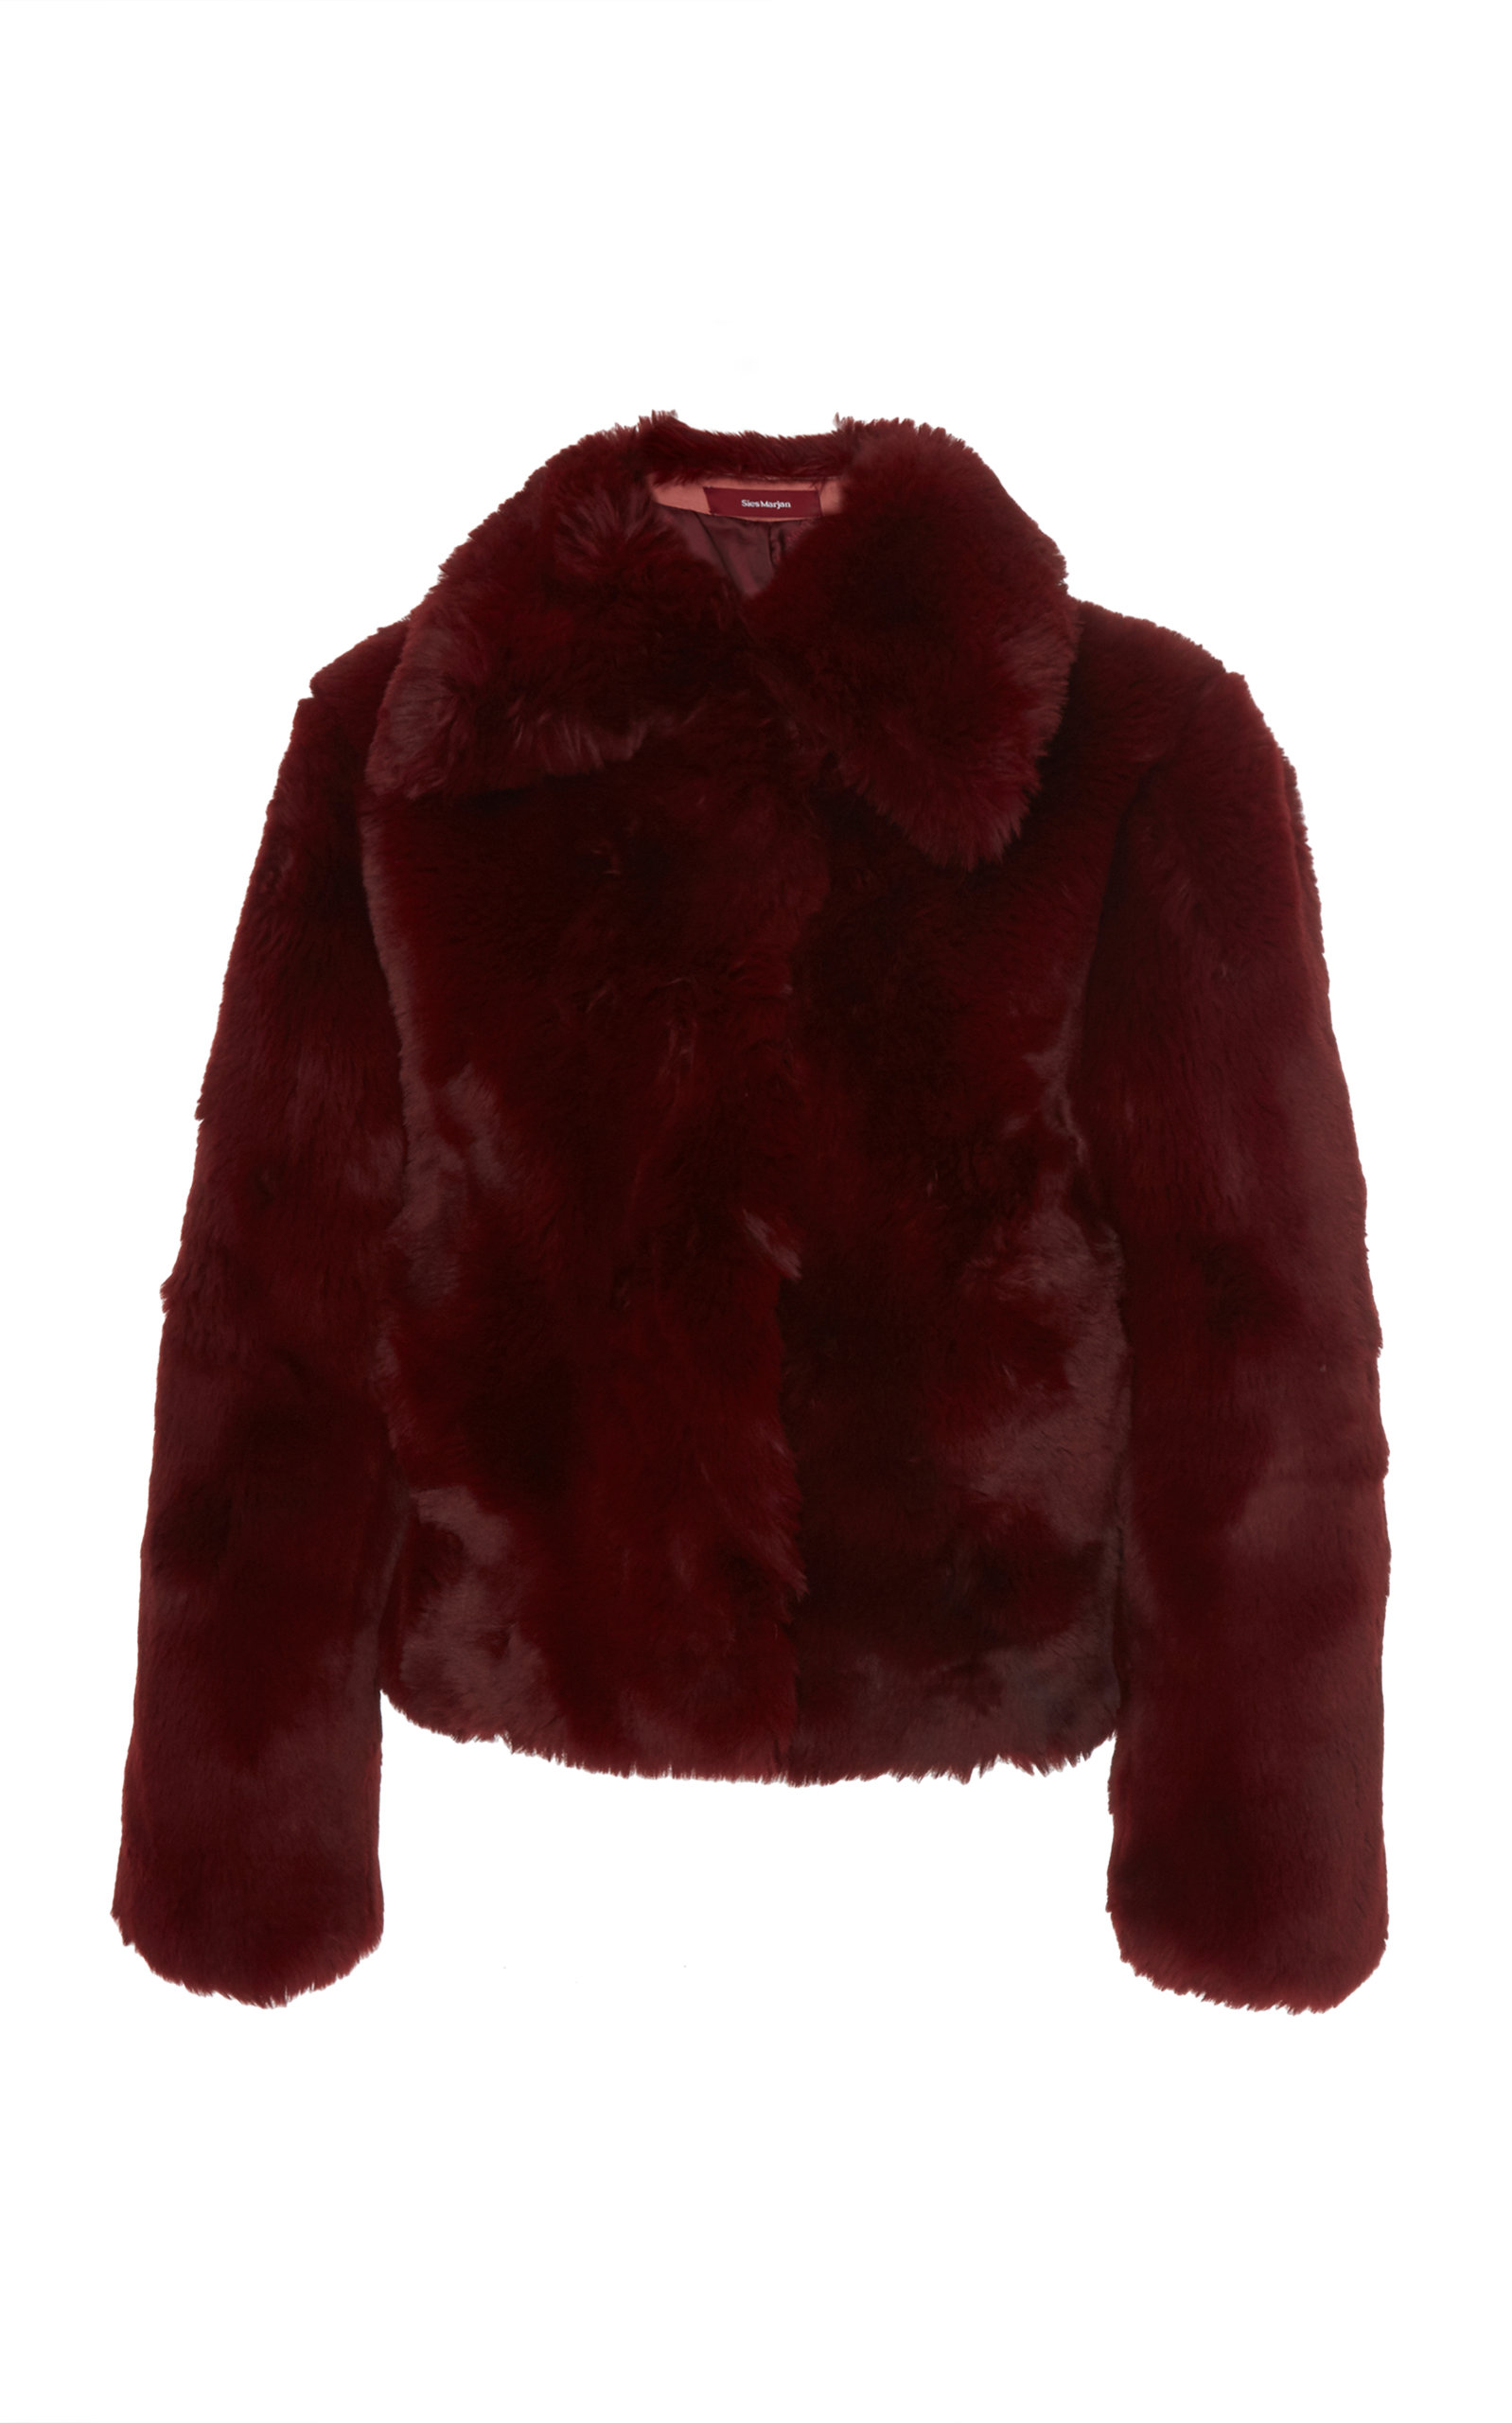 Sies Marjan Jackets Felice Collared Faux Fur Jacket